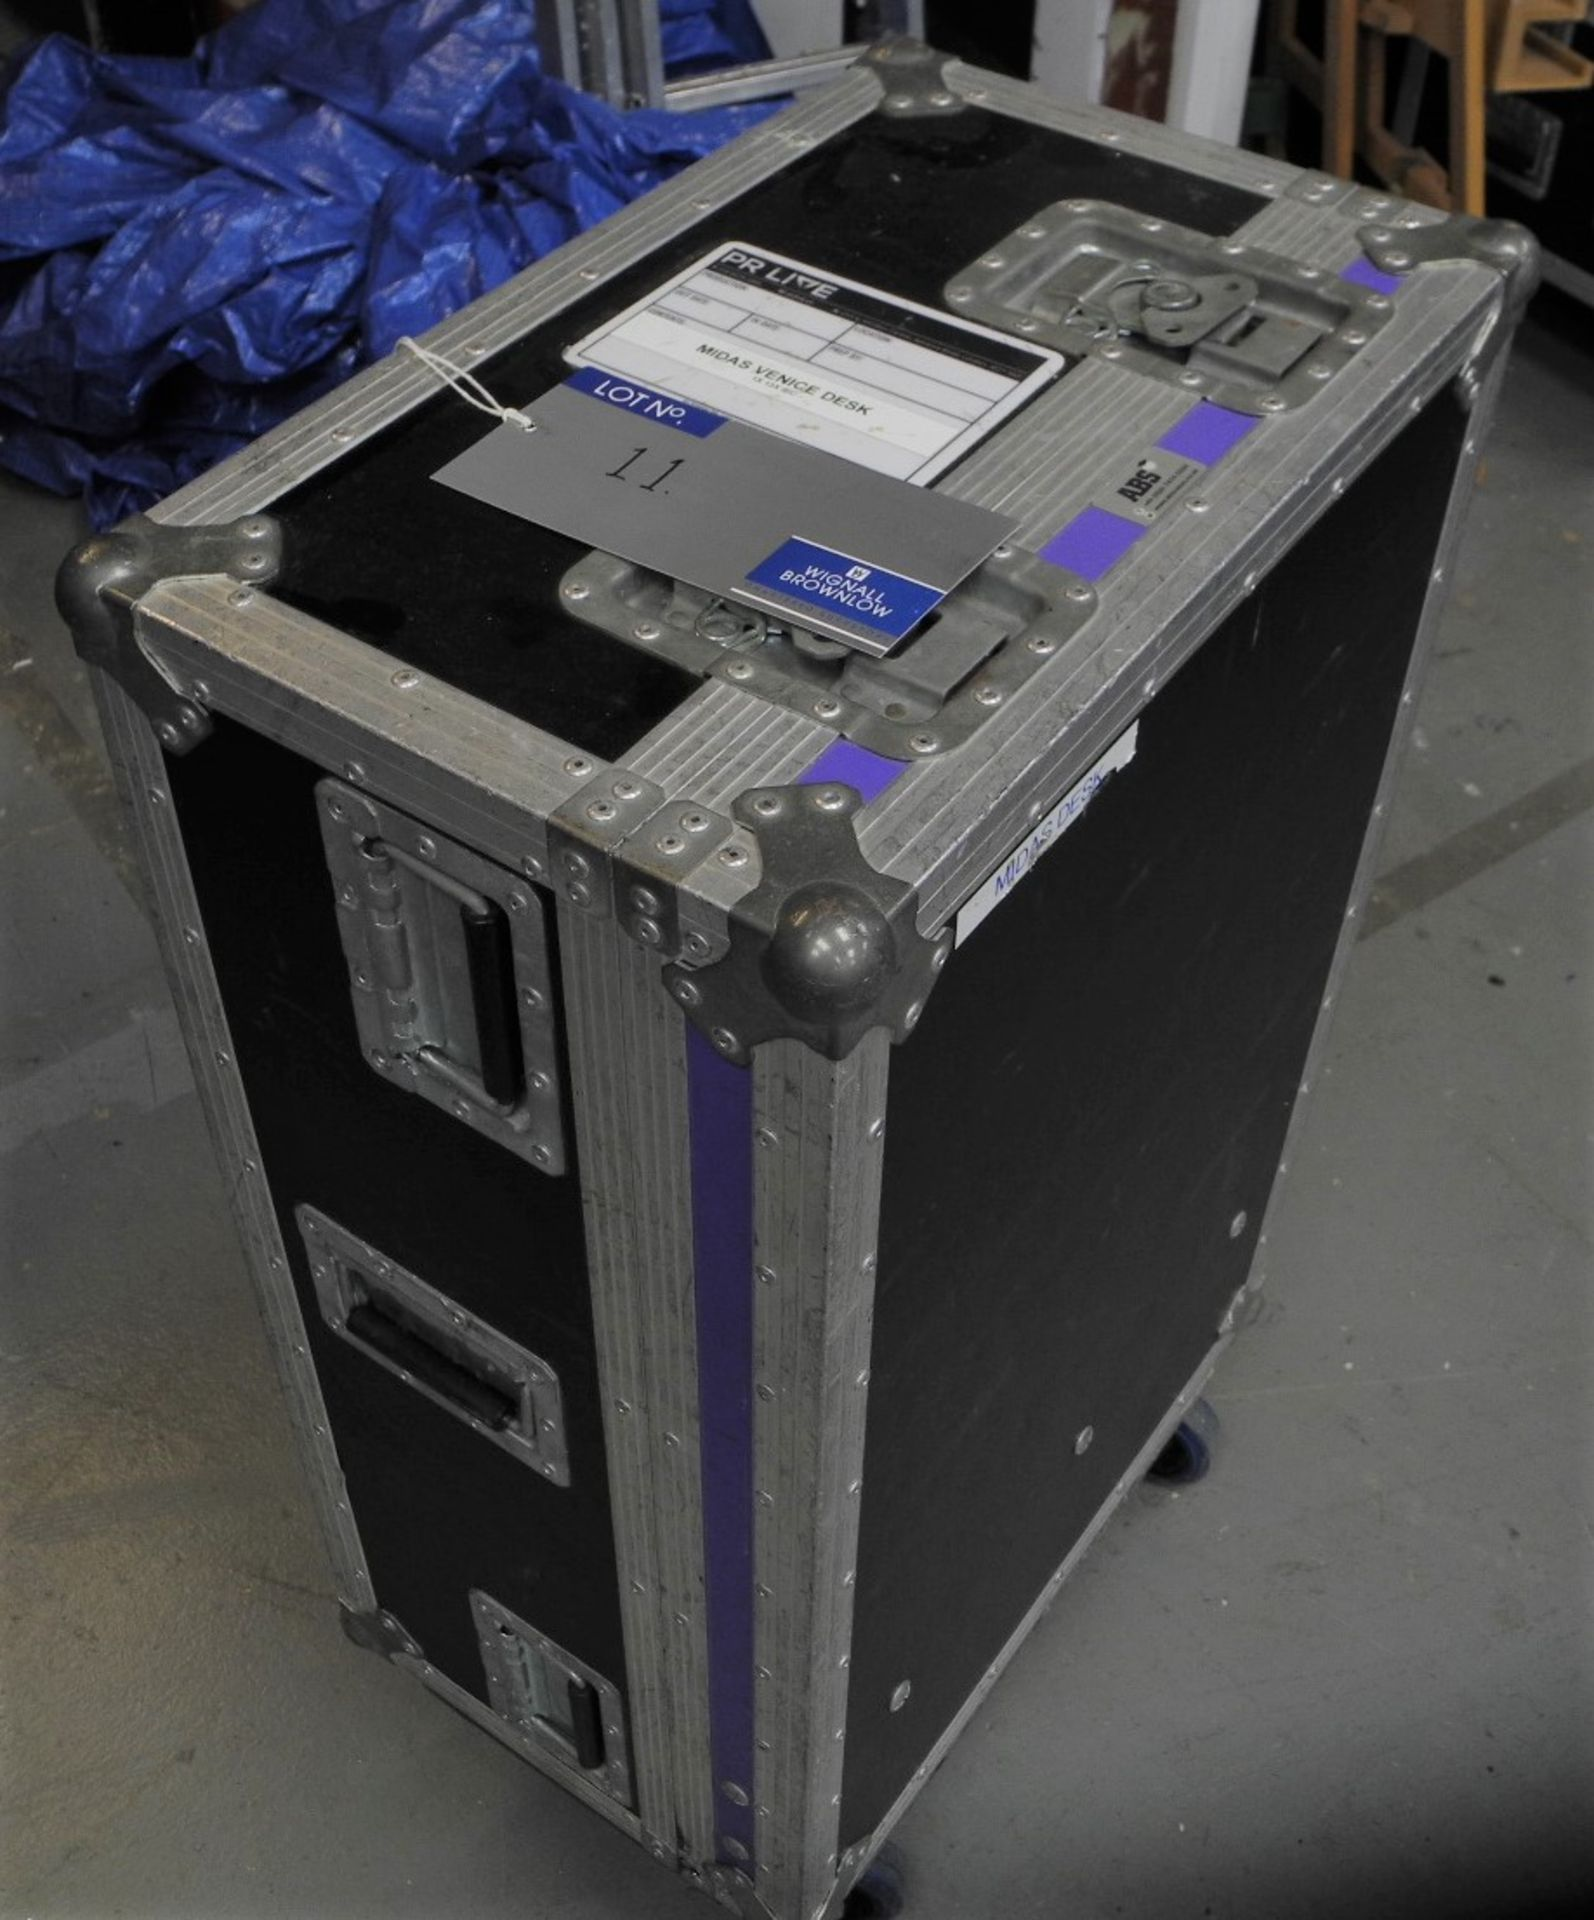 A Midas Venice 160 Analogue Sound Desk with flight case, 16 in 8 out, immaculate condition, full - Image 3 of 3